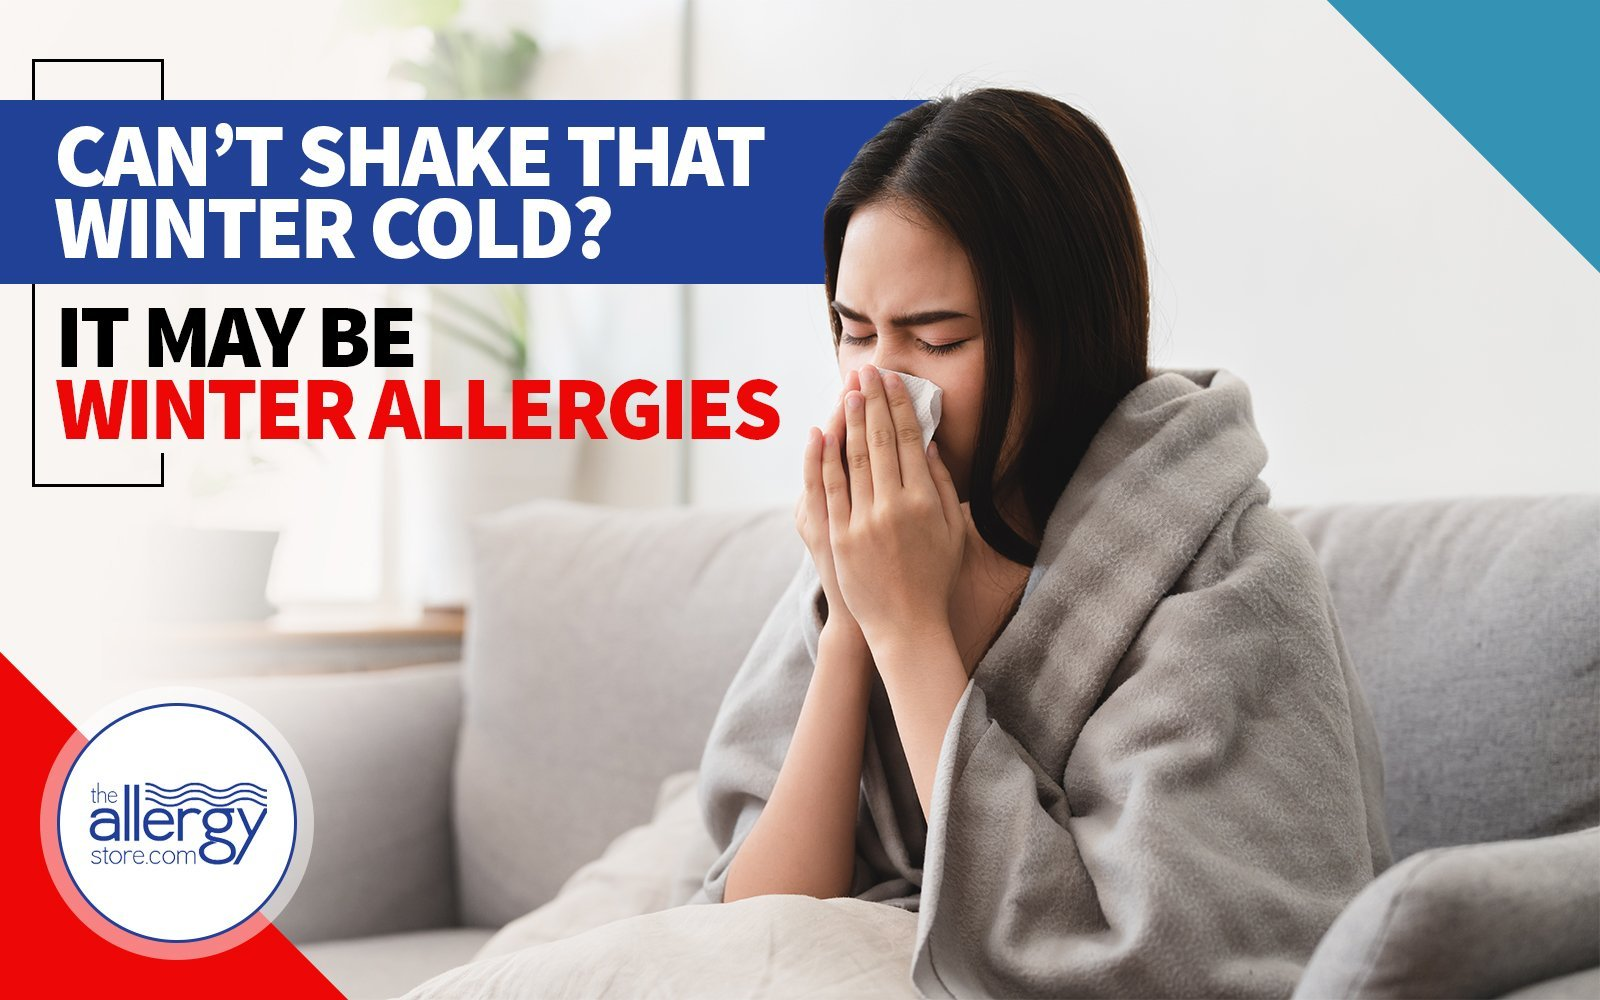 Can't Shake that Winter Cold? It May be Winter Allergies